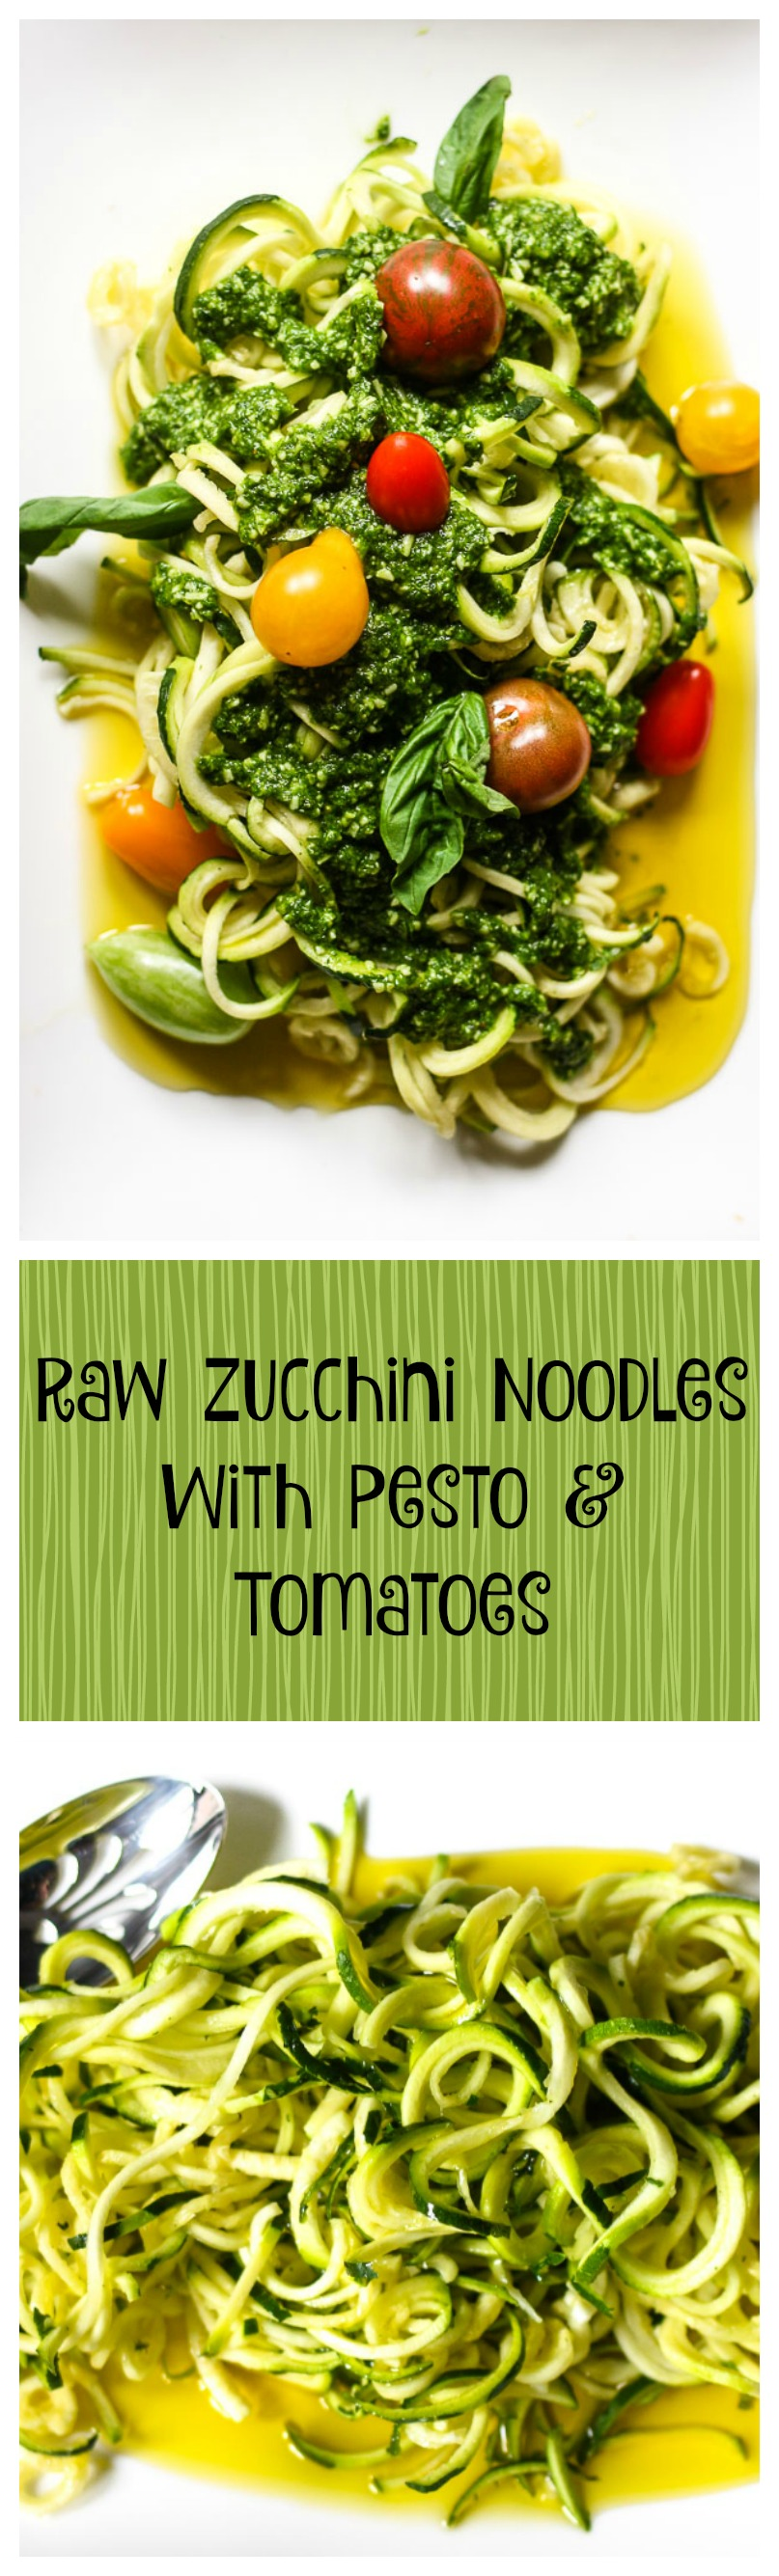 raw zucchini noodles with pesto and tomatoes